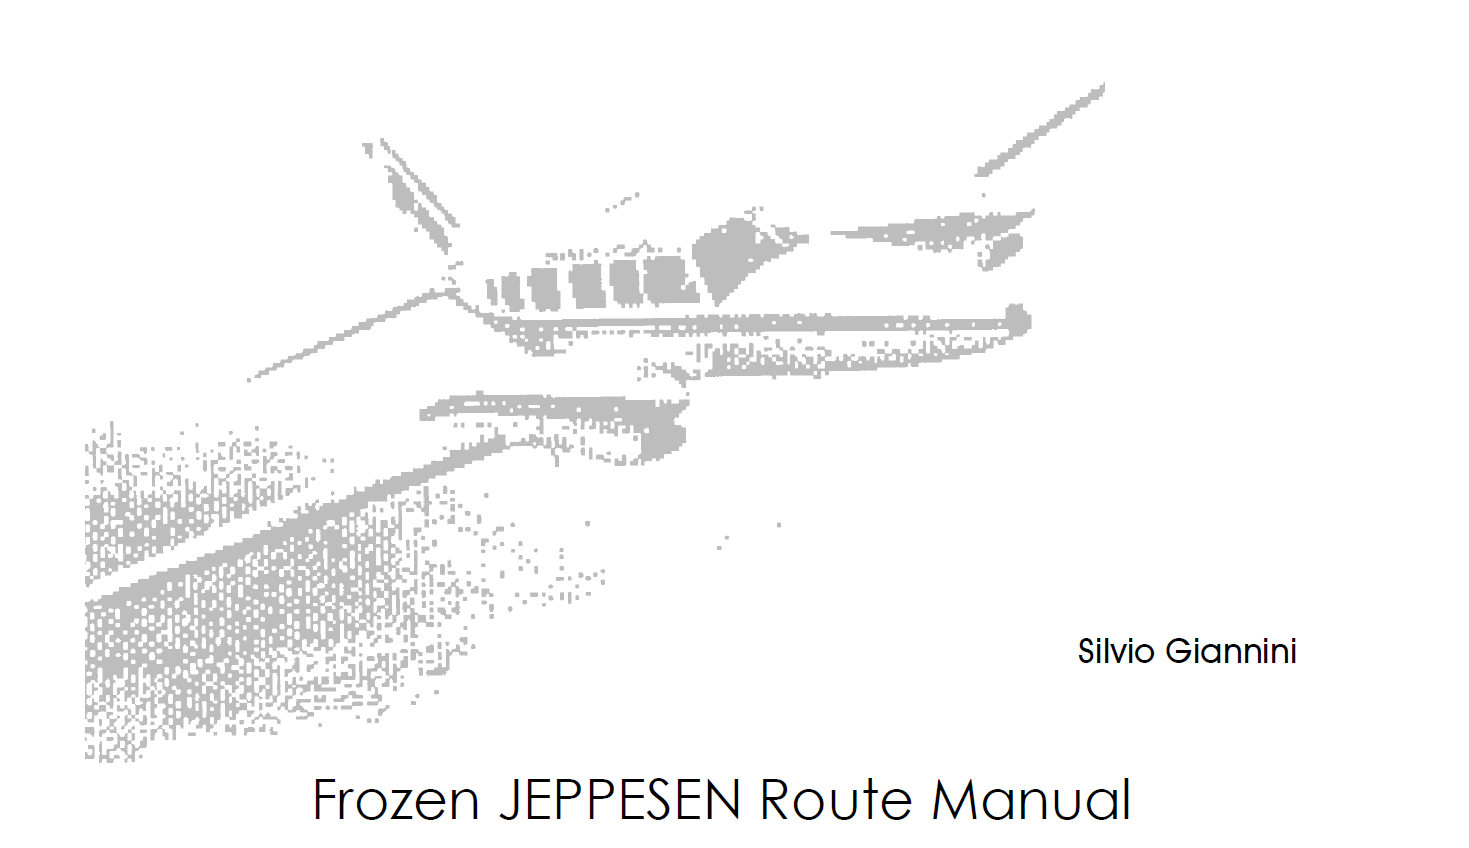 Frozen JEPPESEN Route Manual